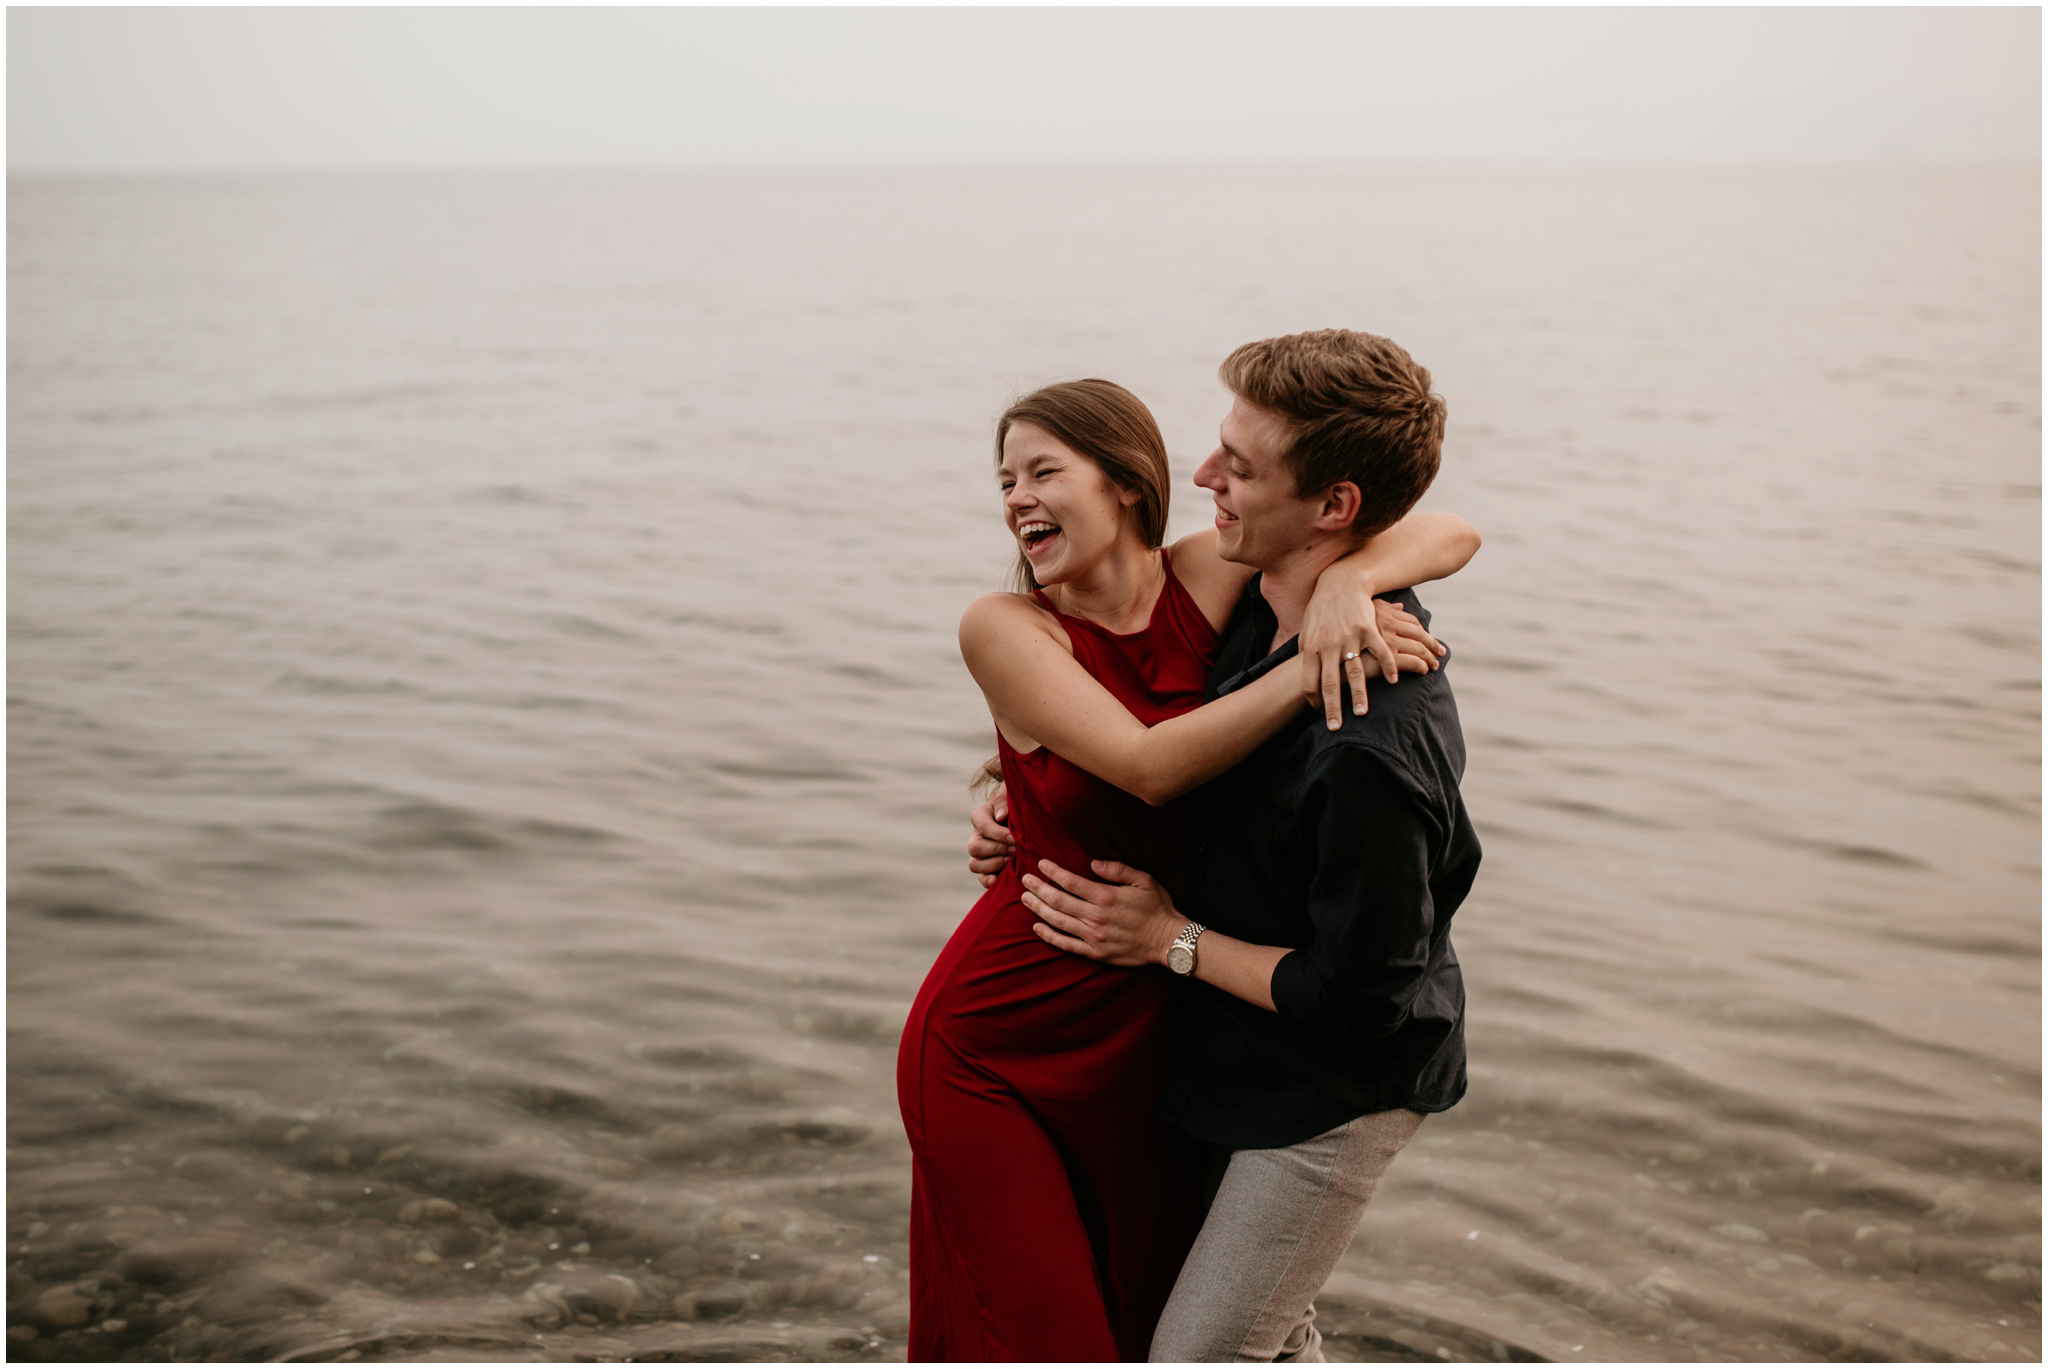 emma-and-connor-west-seattle-lincoln-park-engagement-session-seattle-wedding-photographer-020.jpg